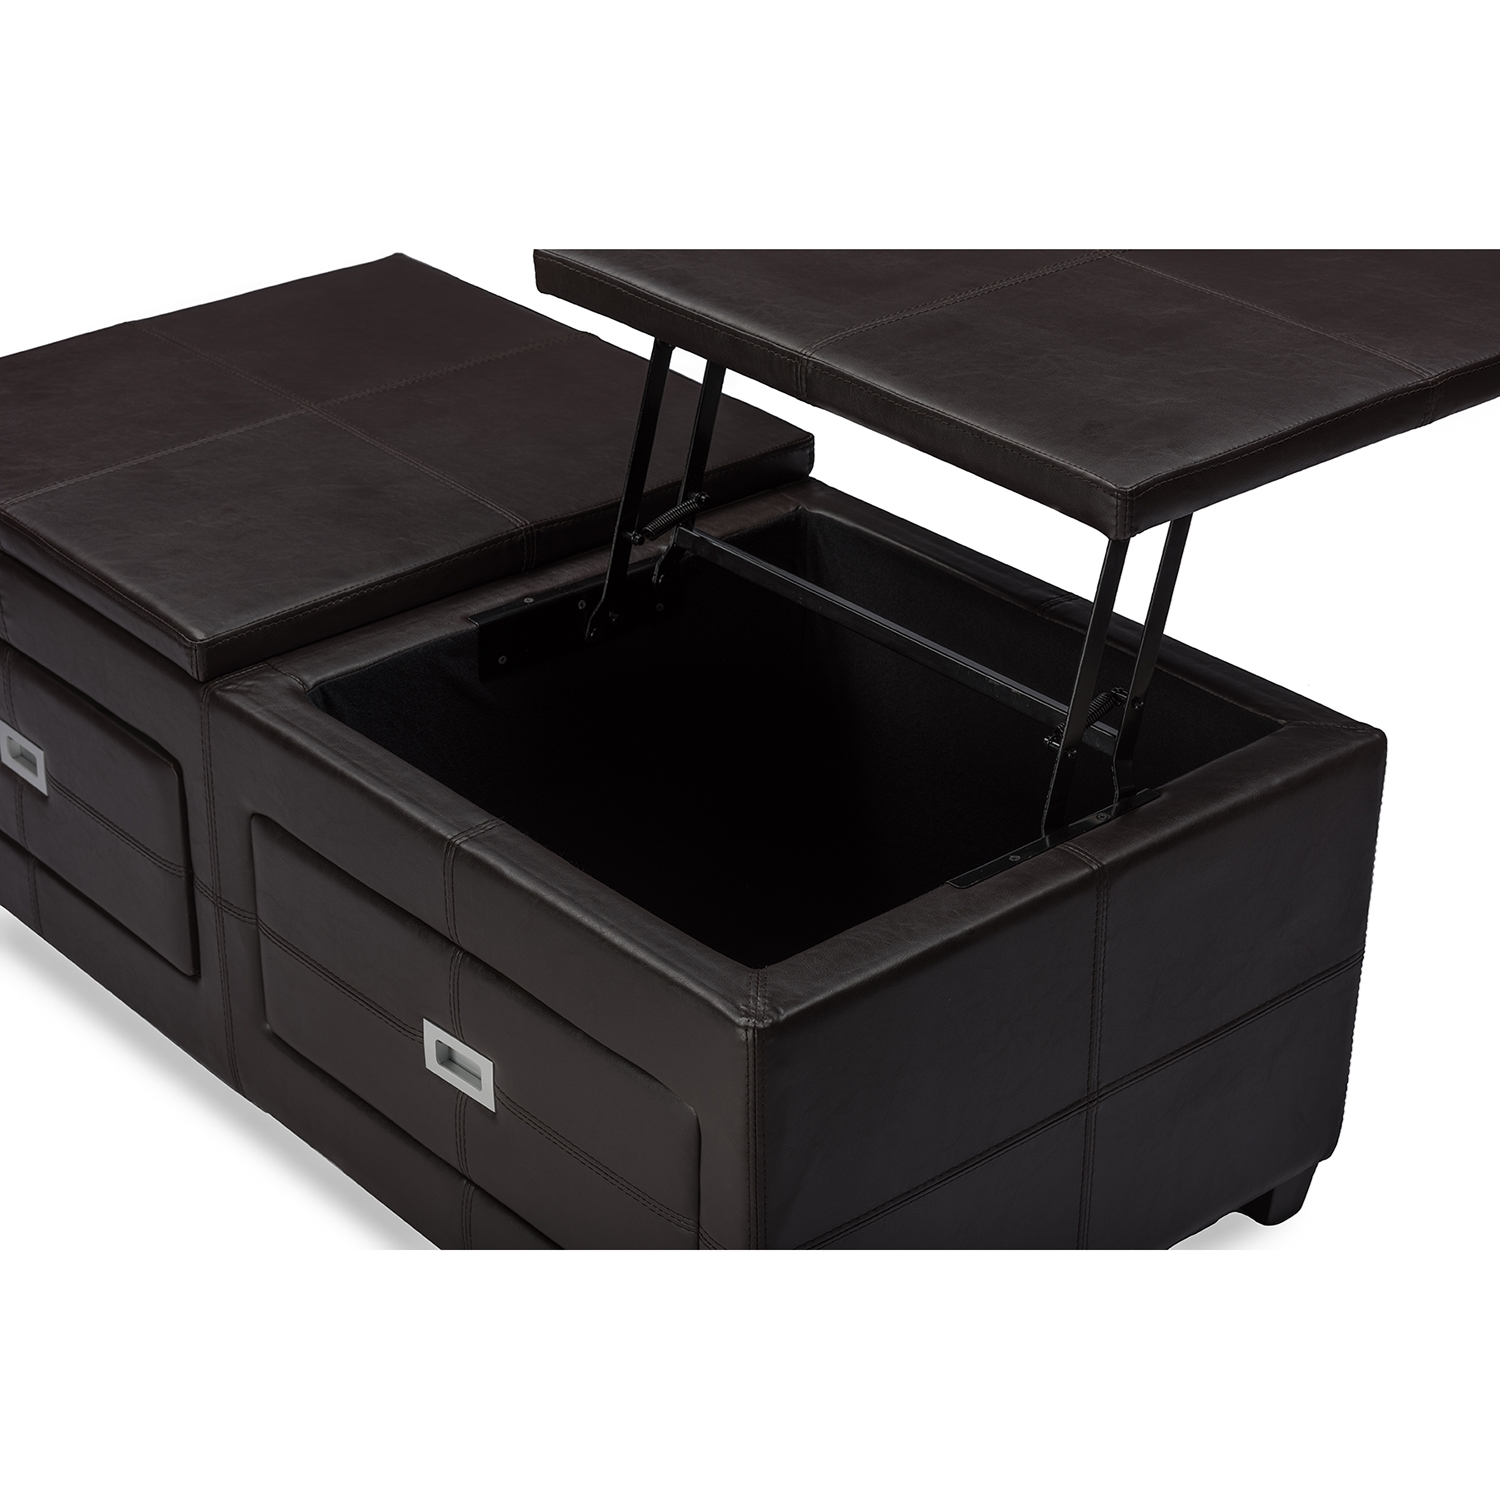 Baxton Studio Indy Modern and Contemporary Functional Lifttop